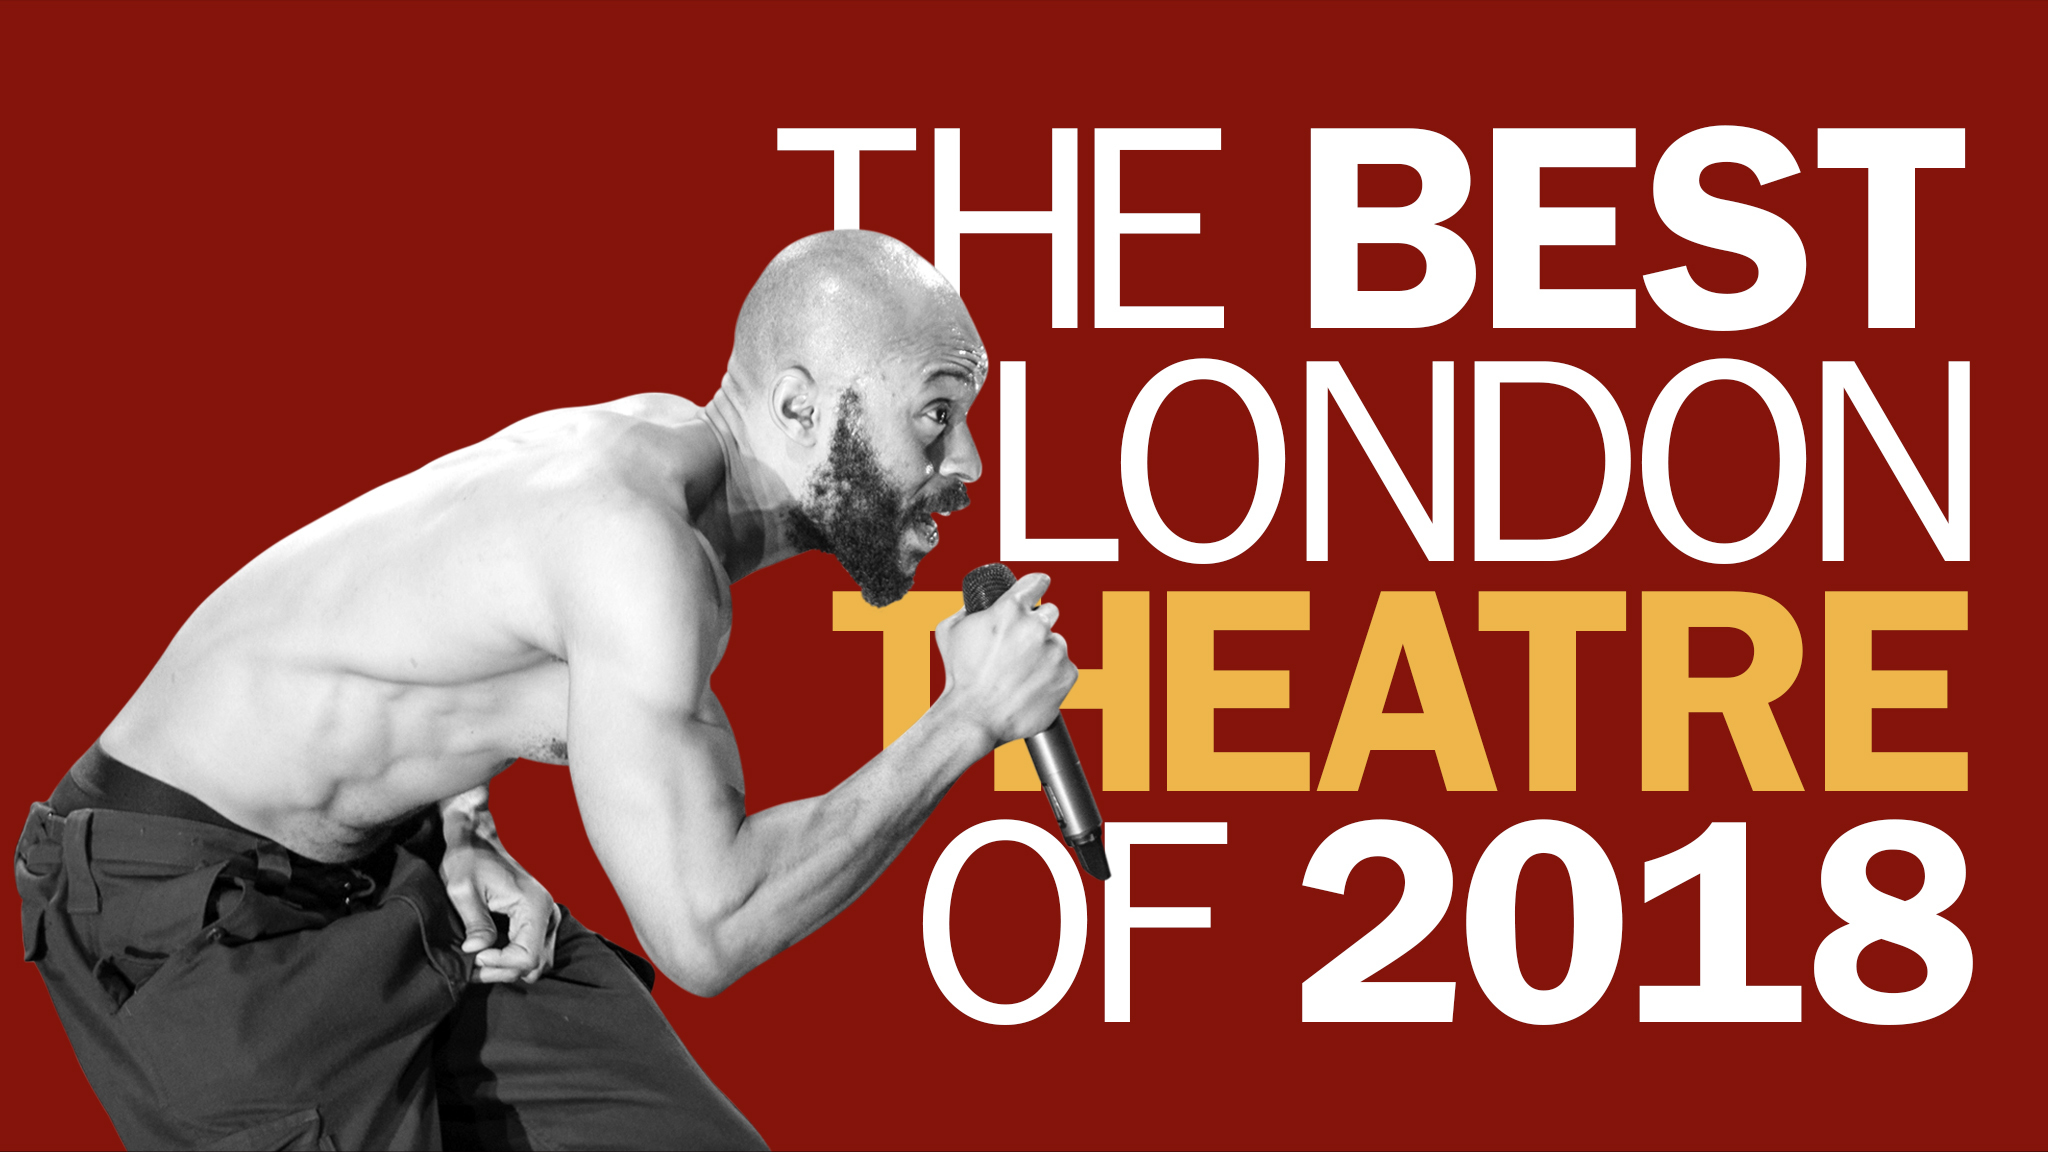 The best theatre of 2018